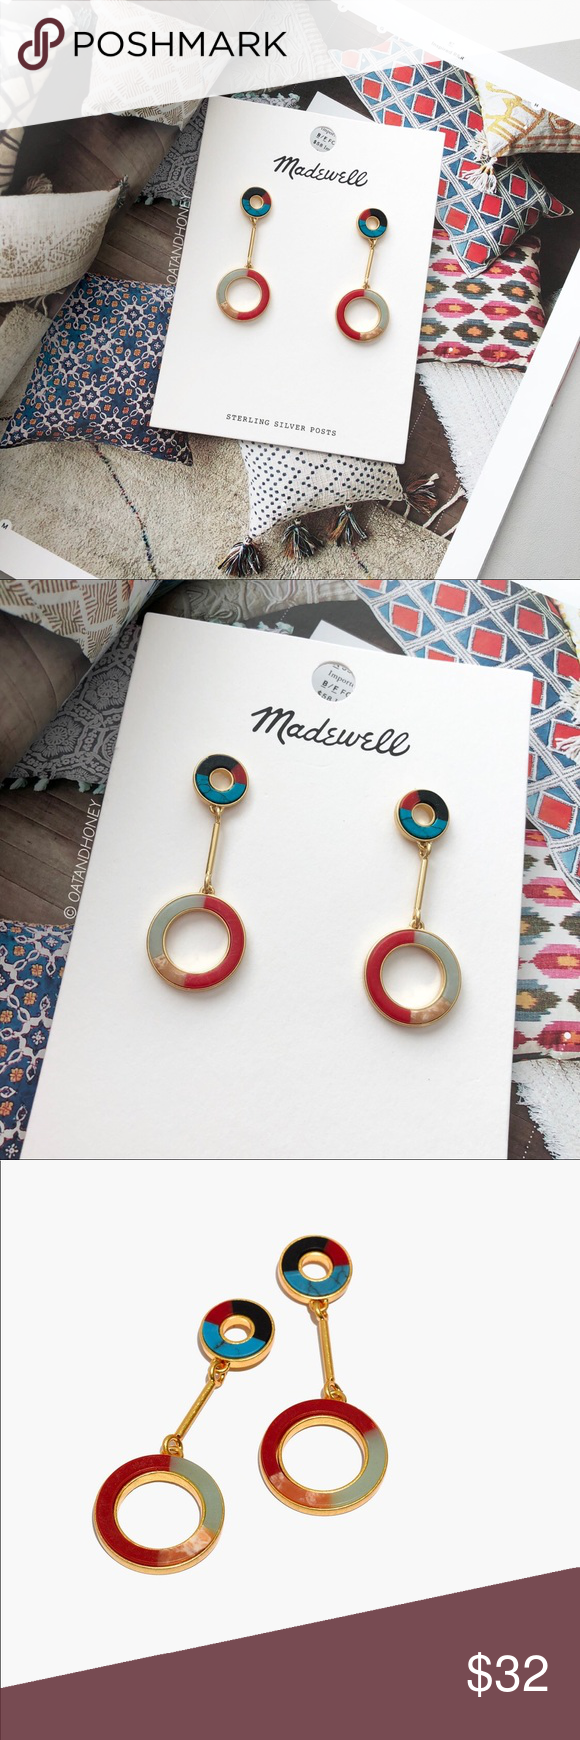 41a2a5611 Madewell Desert Sunset Circle Drop Earrings New with tag. 2 1/8